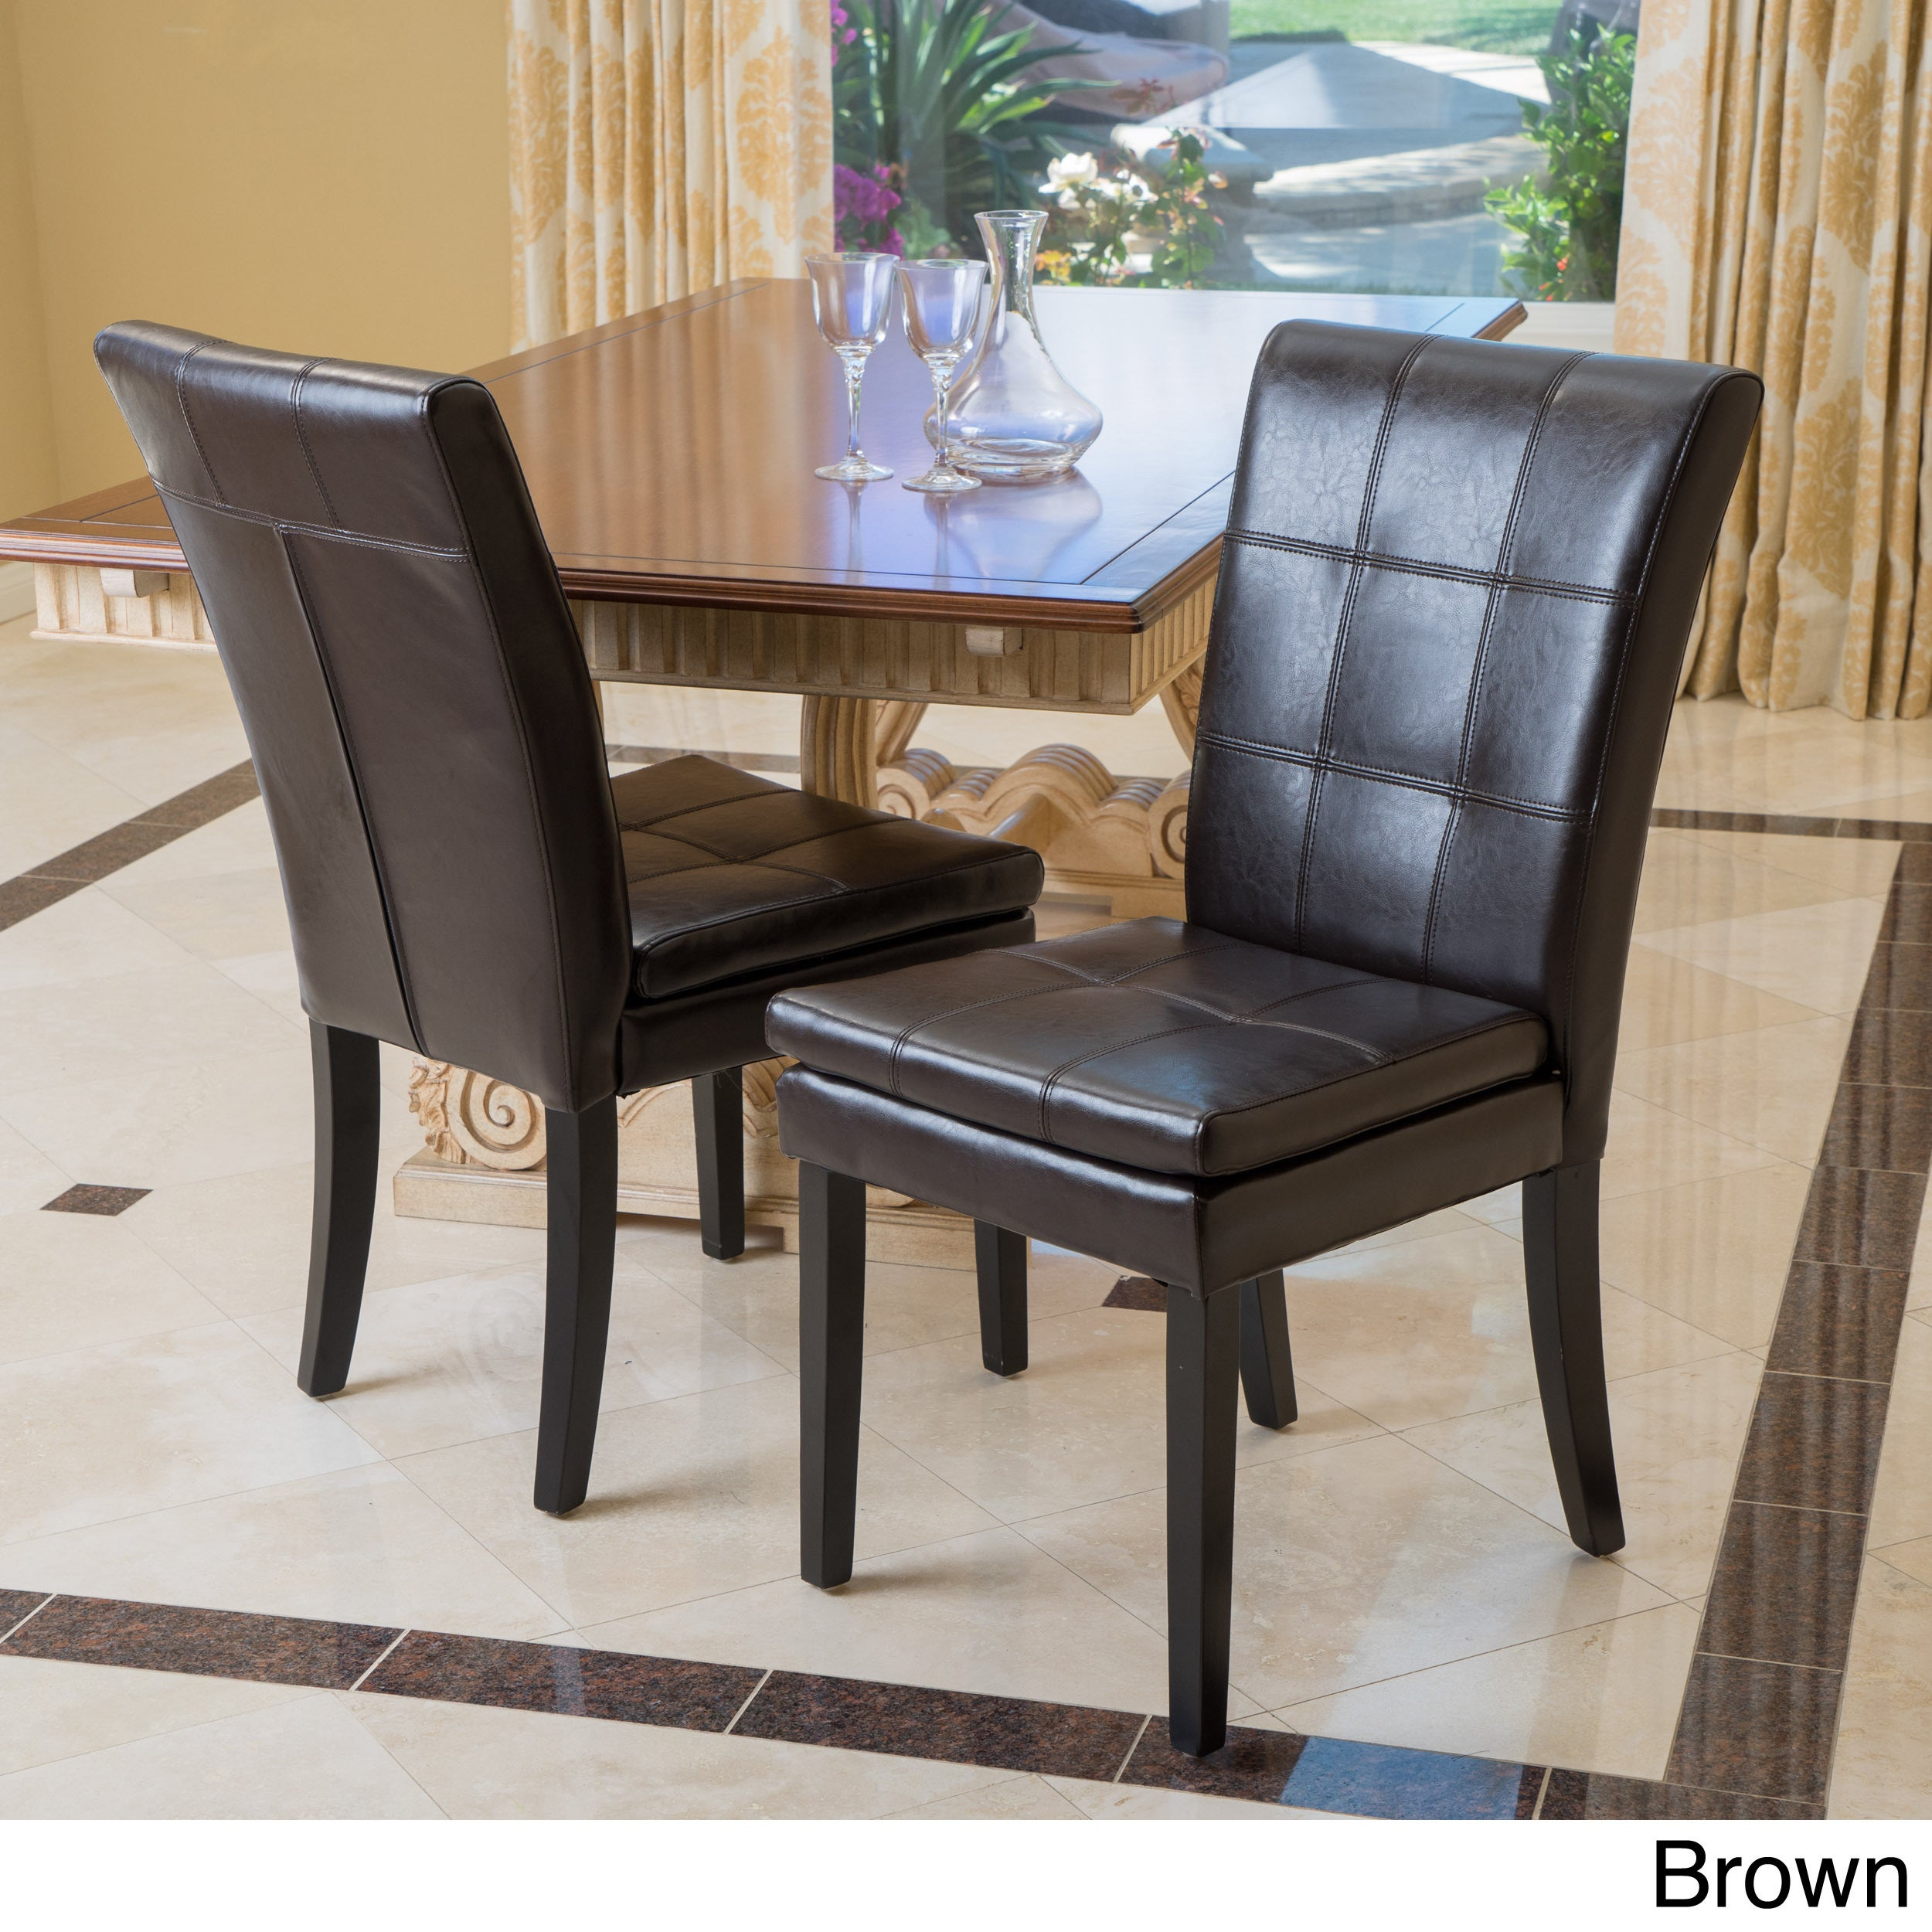 Christopher Knight Home Gala Dining Chair Set of 2